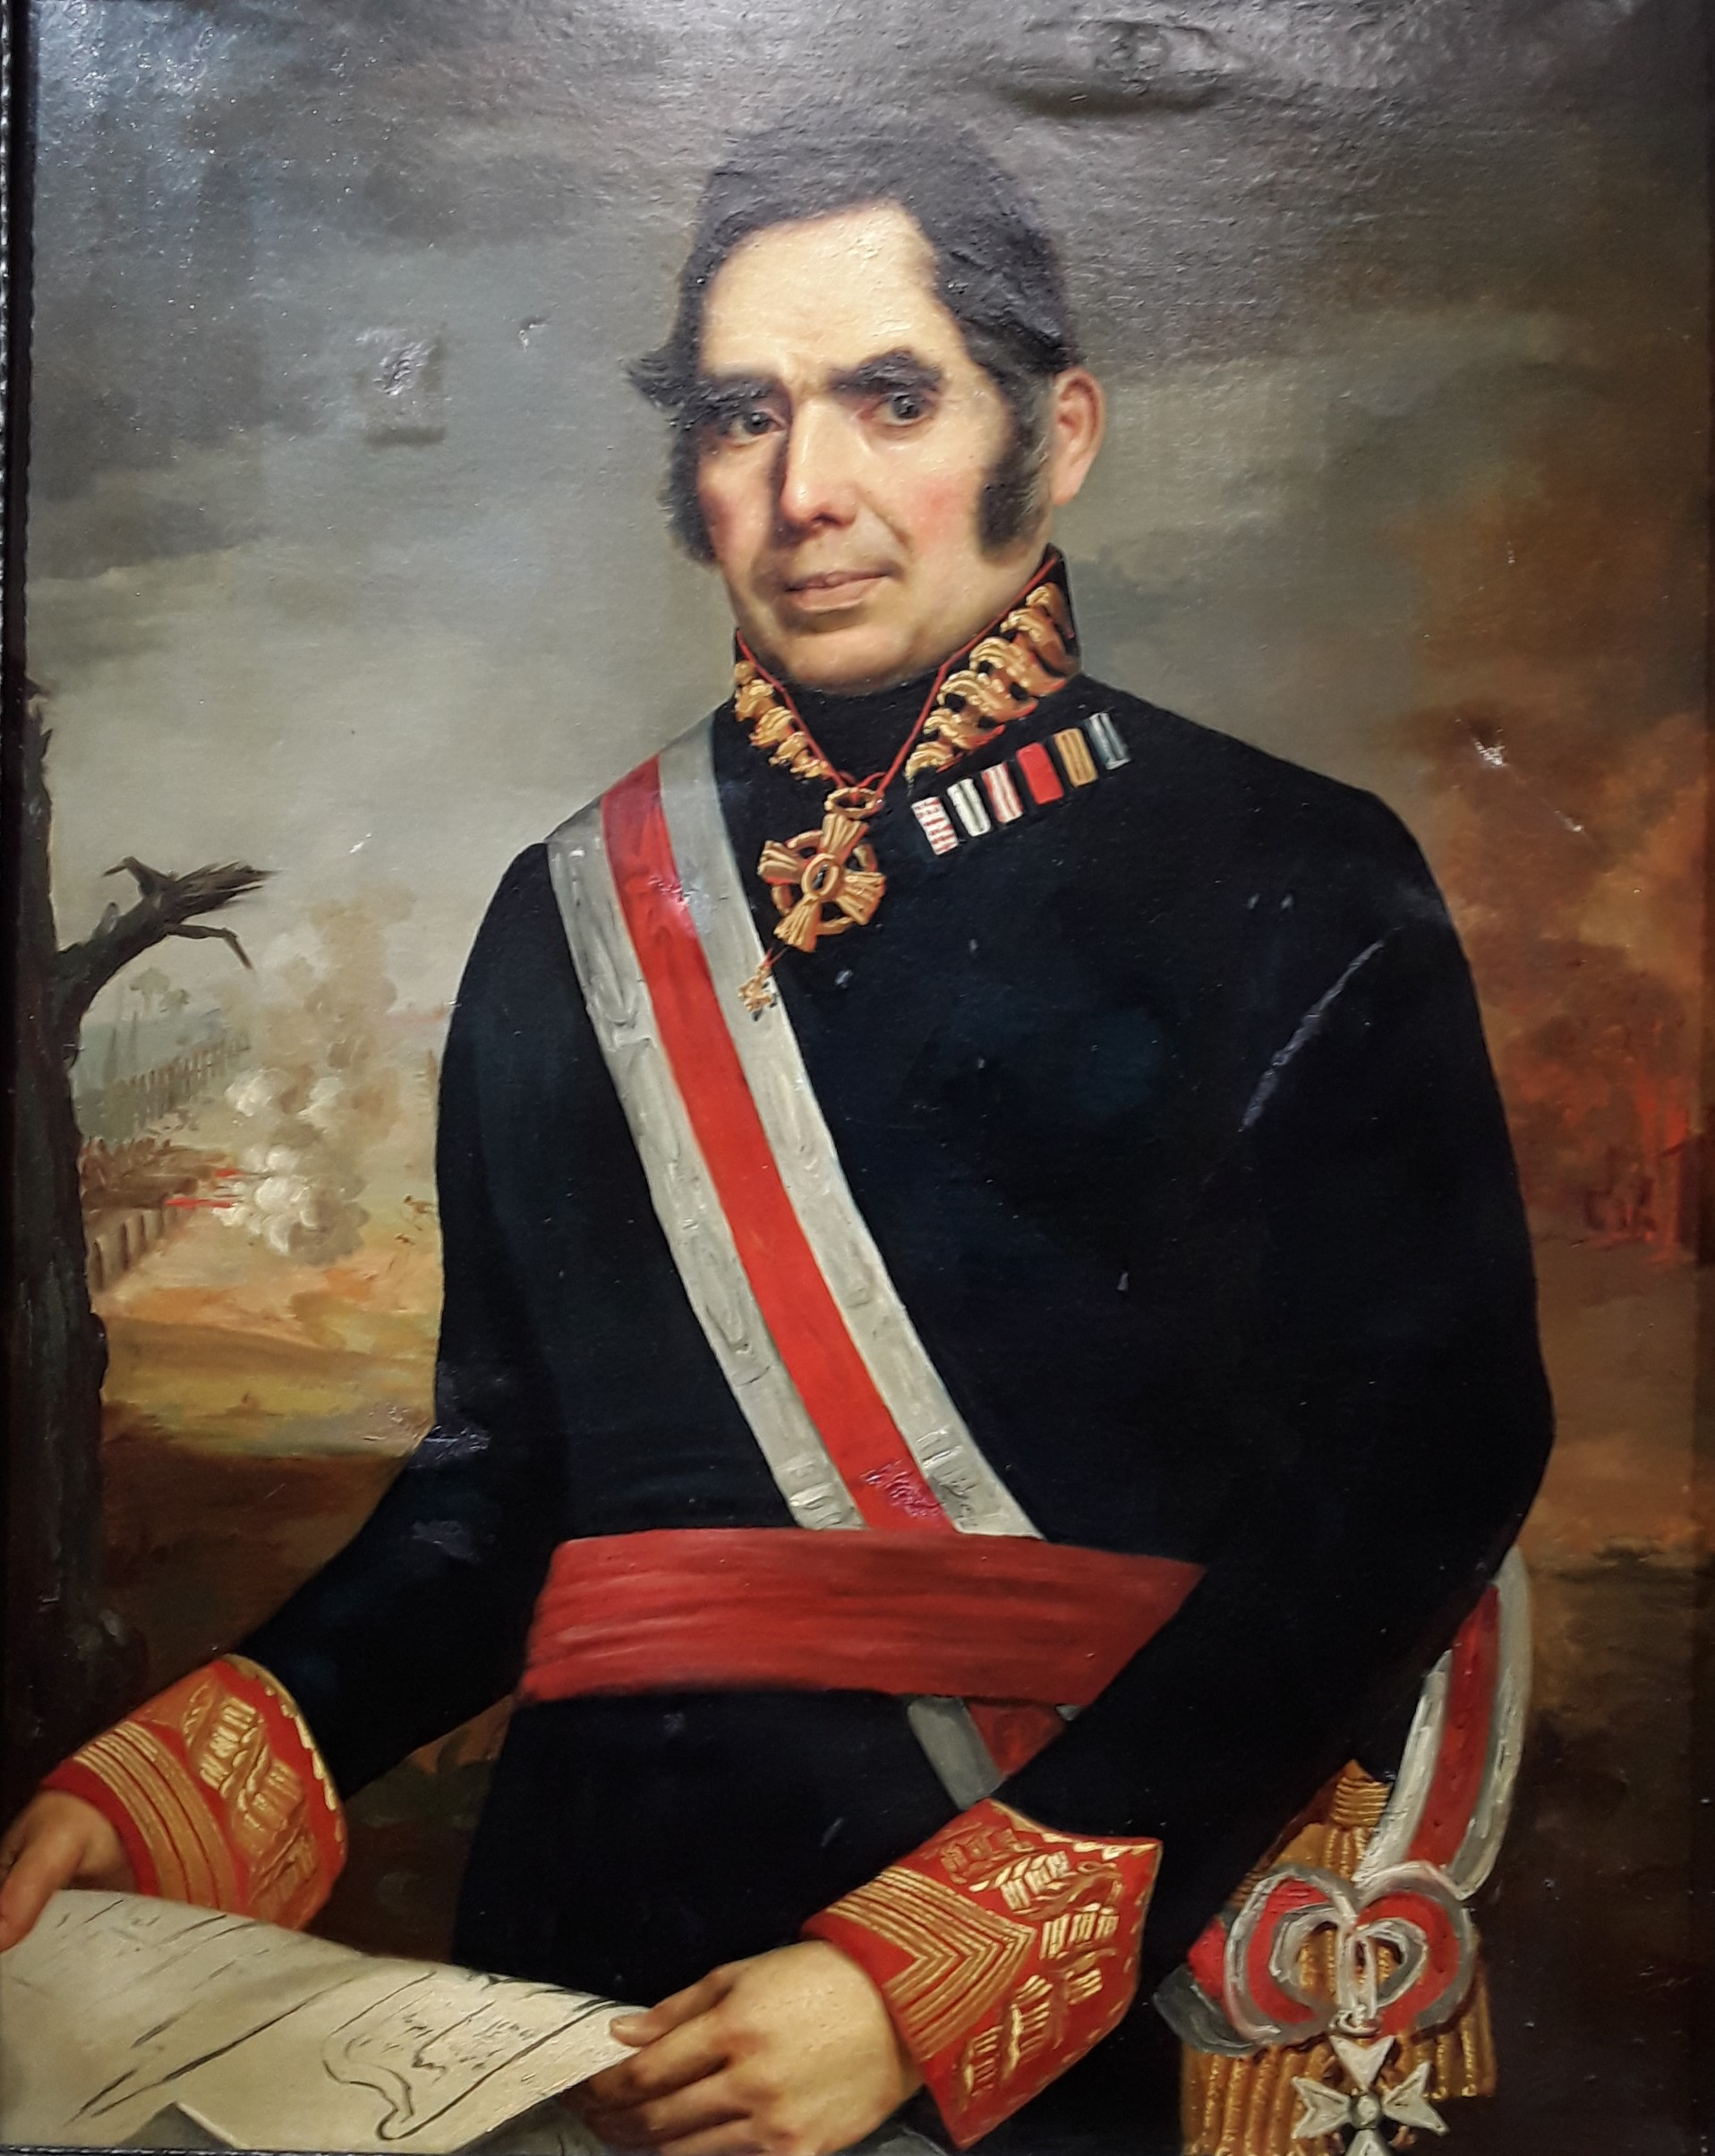 Mariscal Vivanco Barbaza-Acuña